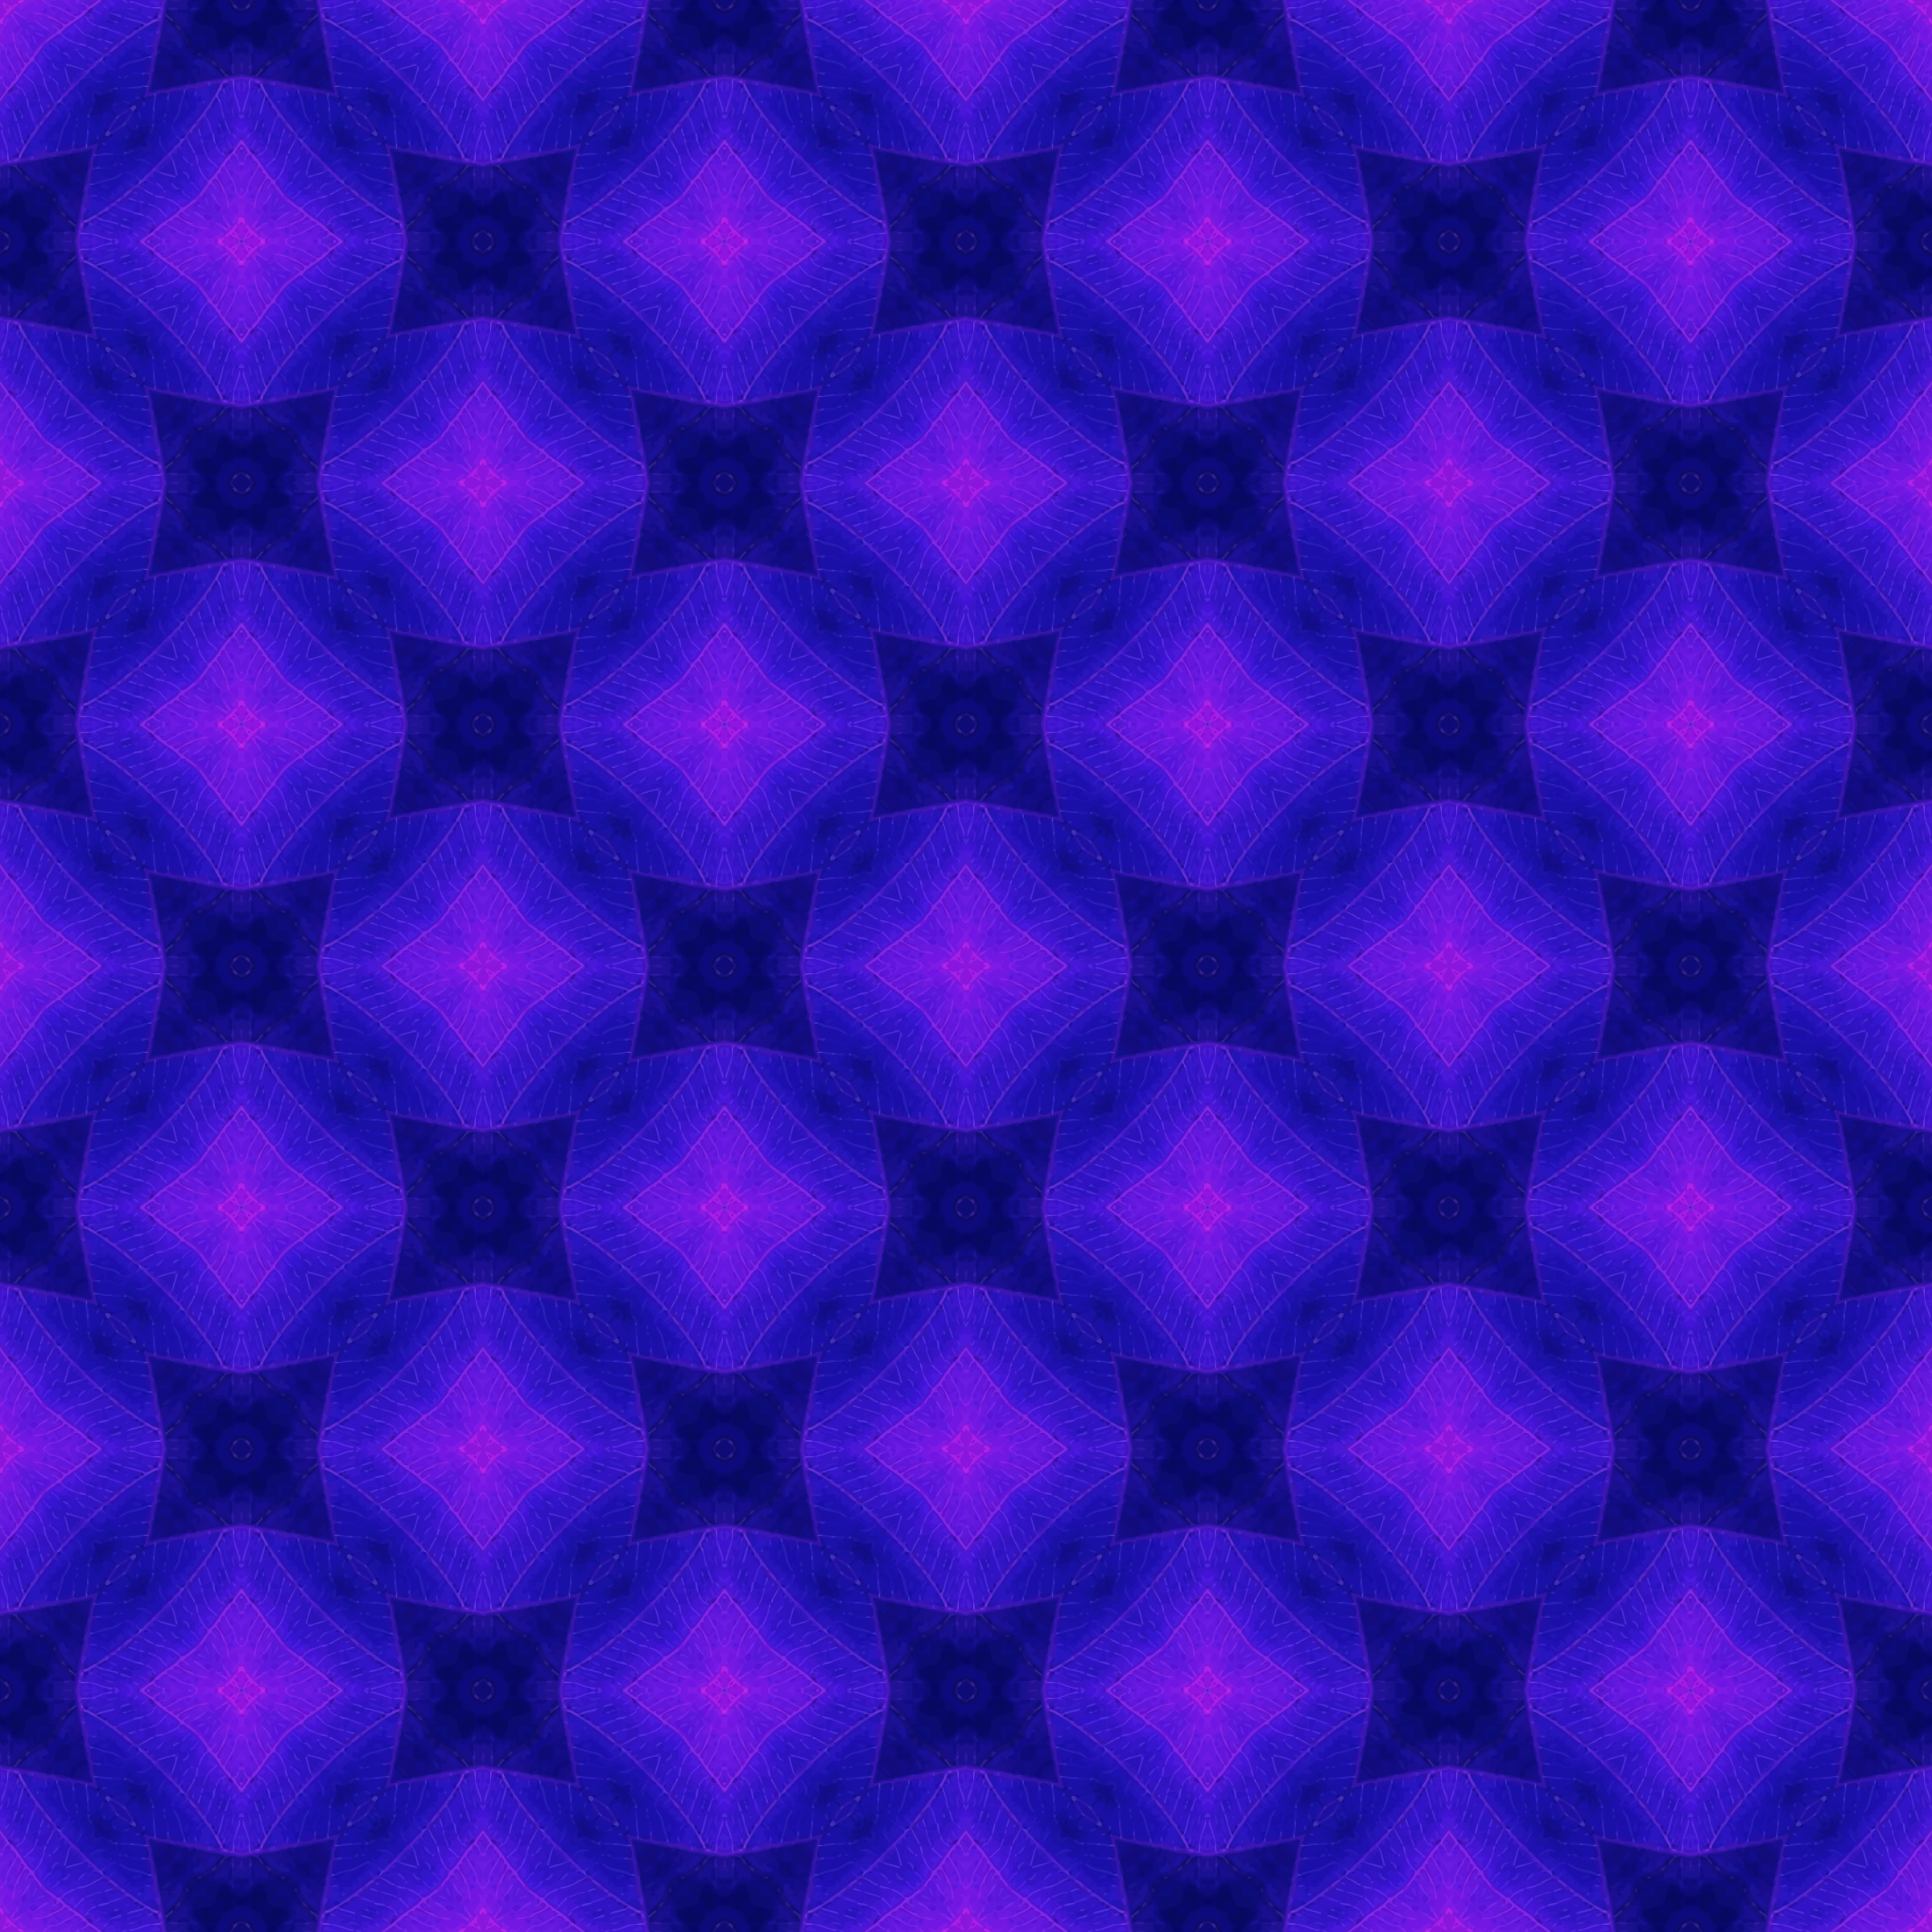 Background pattern 168 (colour 3) by Firkin